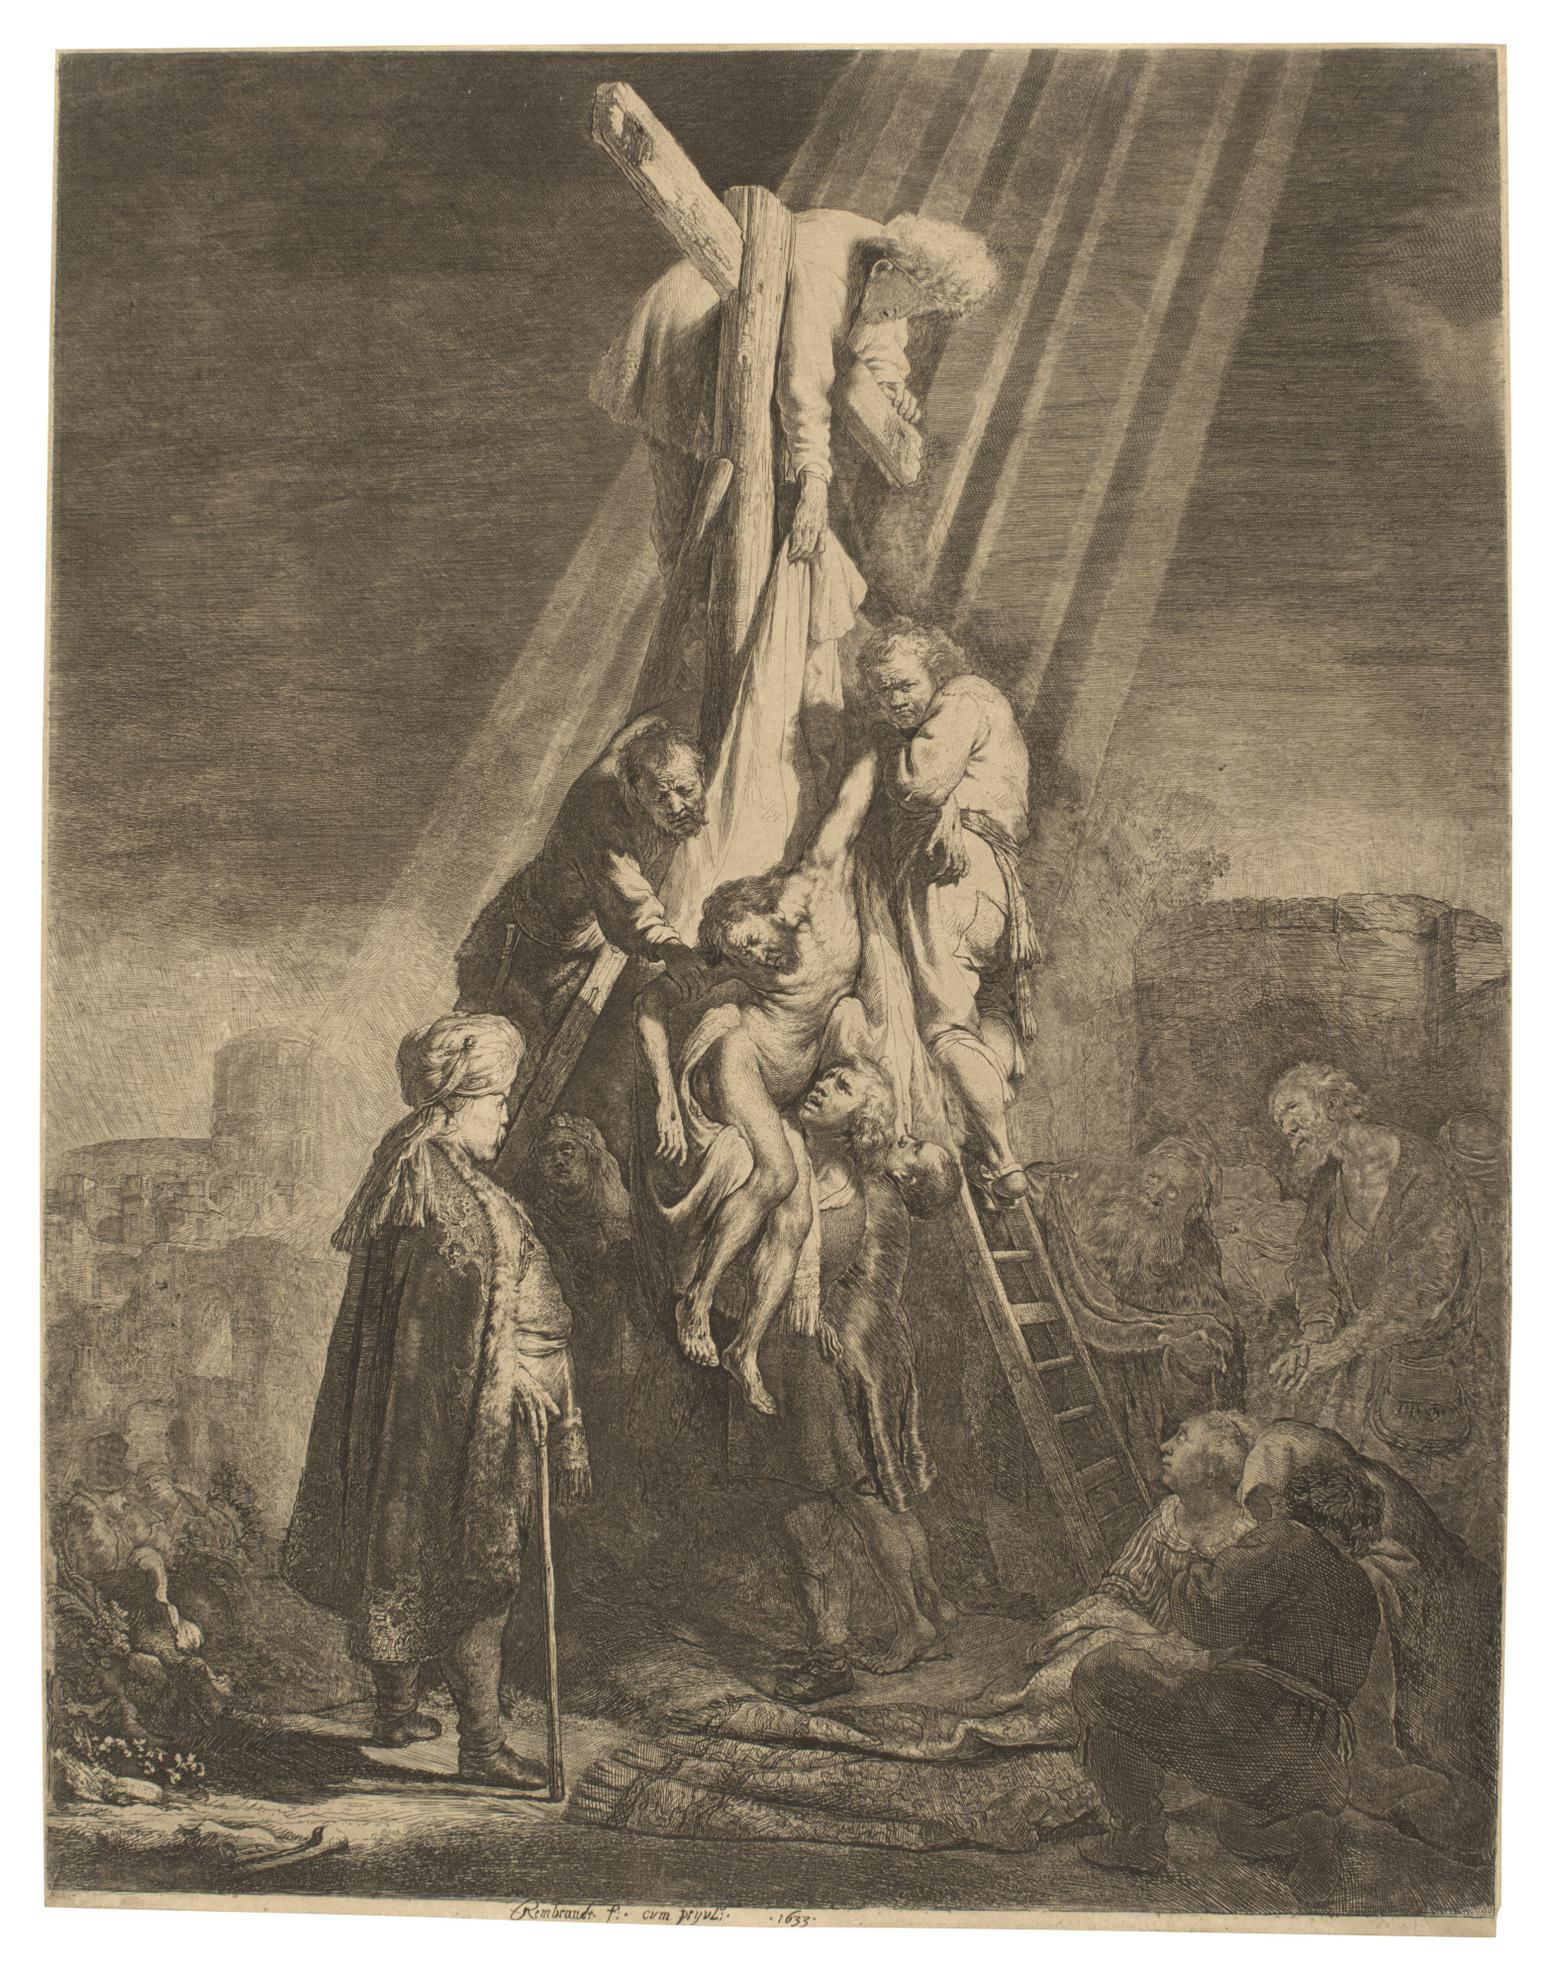 Rembrandt van Rijn-The Descent From The Cross: Second Plate (B., Holl. 81; New Holl. 119; H. 103)-1633